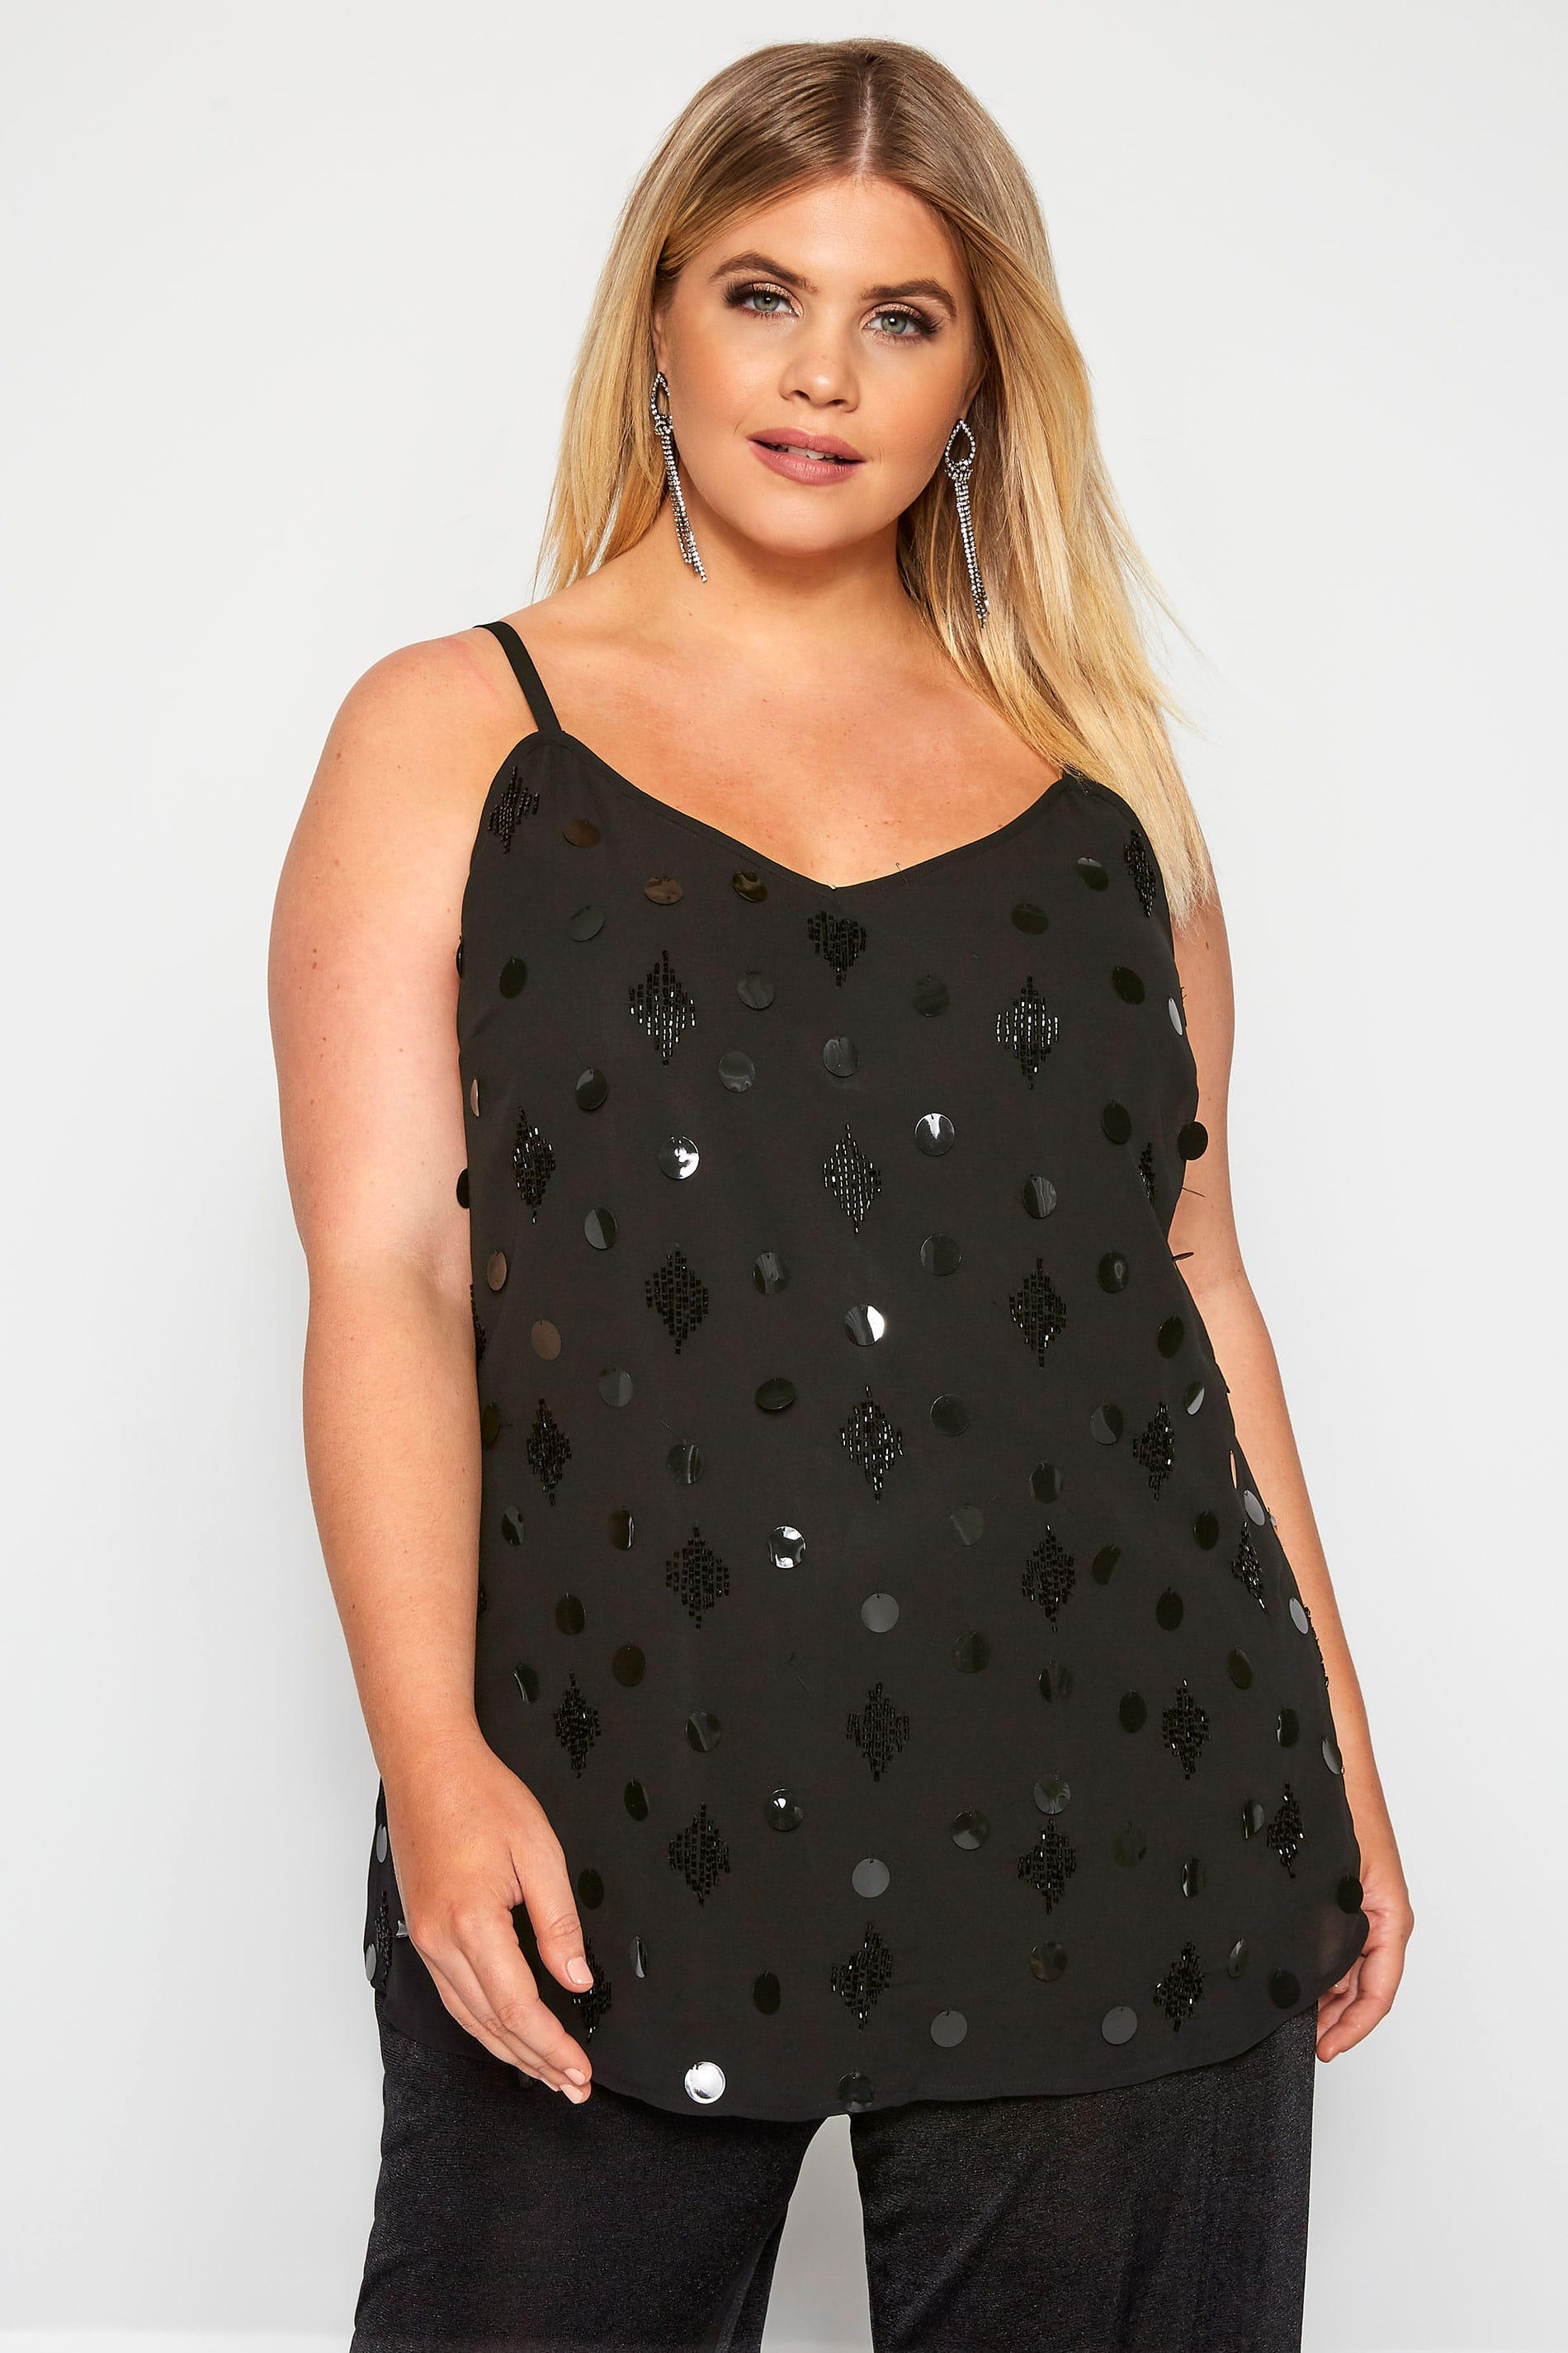 LUXE Black Disc Embellished Cami Top